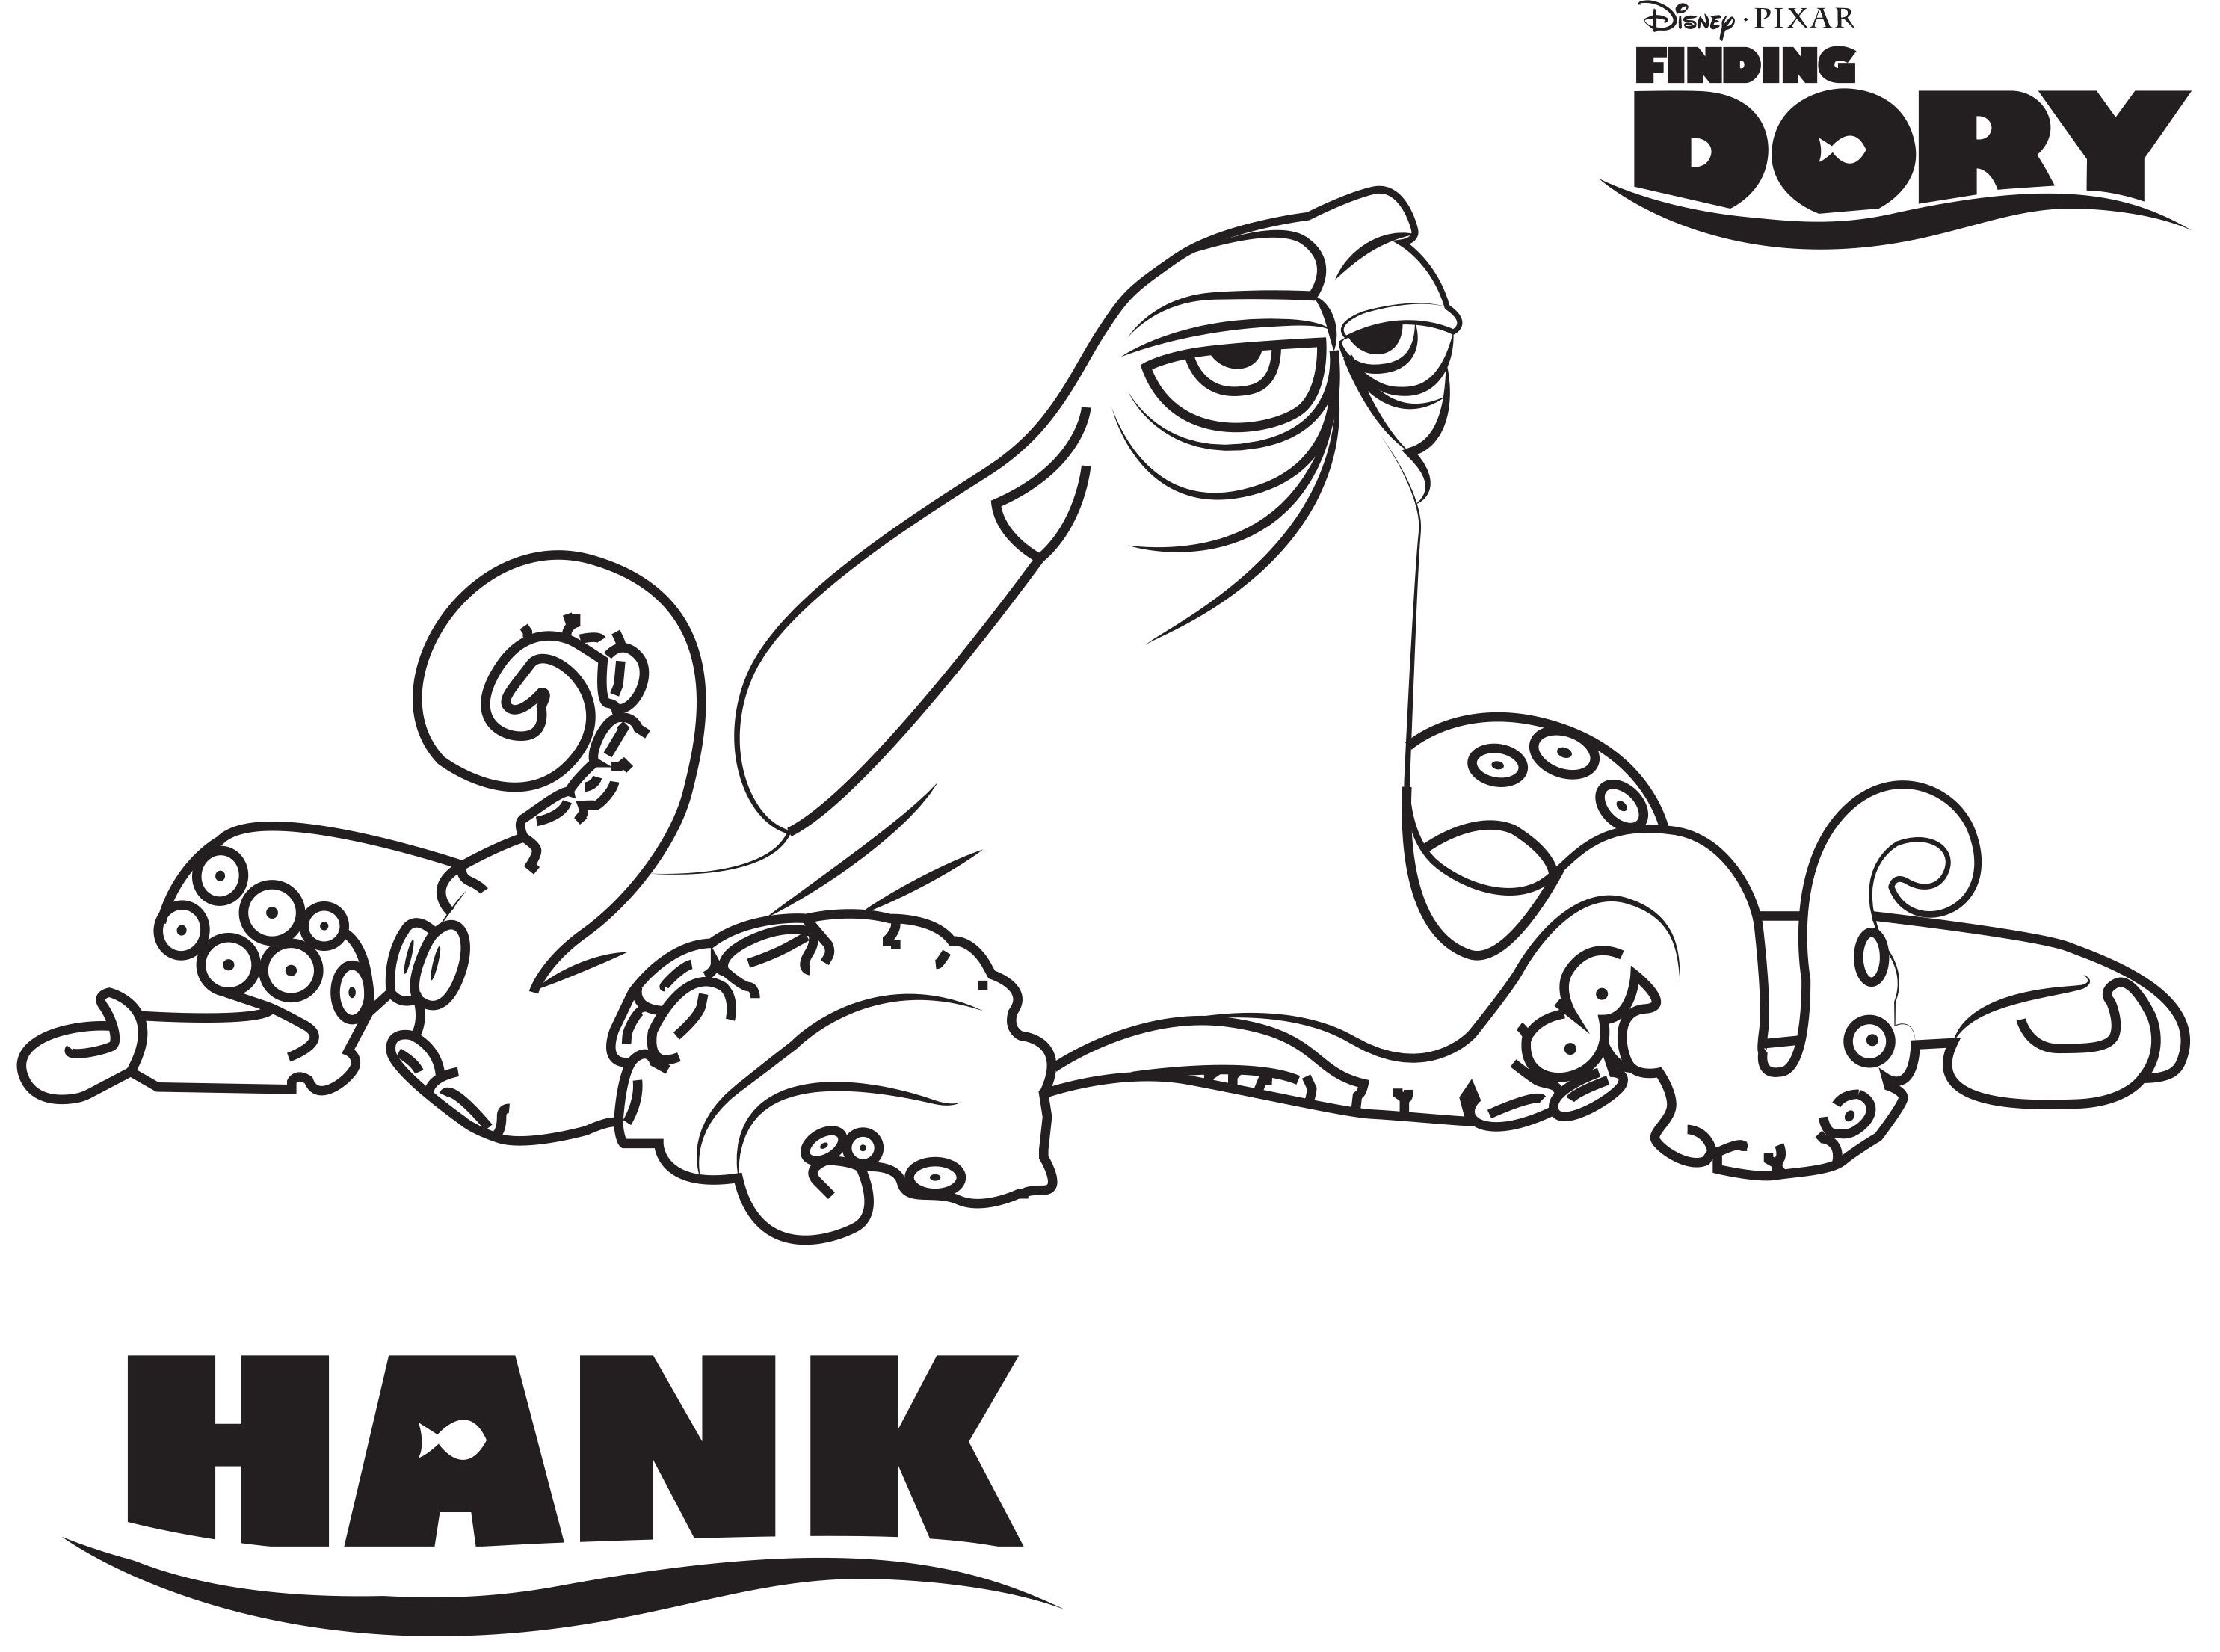 Disney's Finding Dory Hank Coloring Page | Finding Dory ...